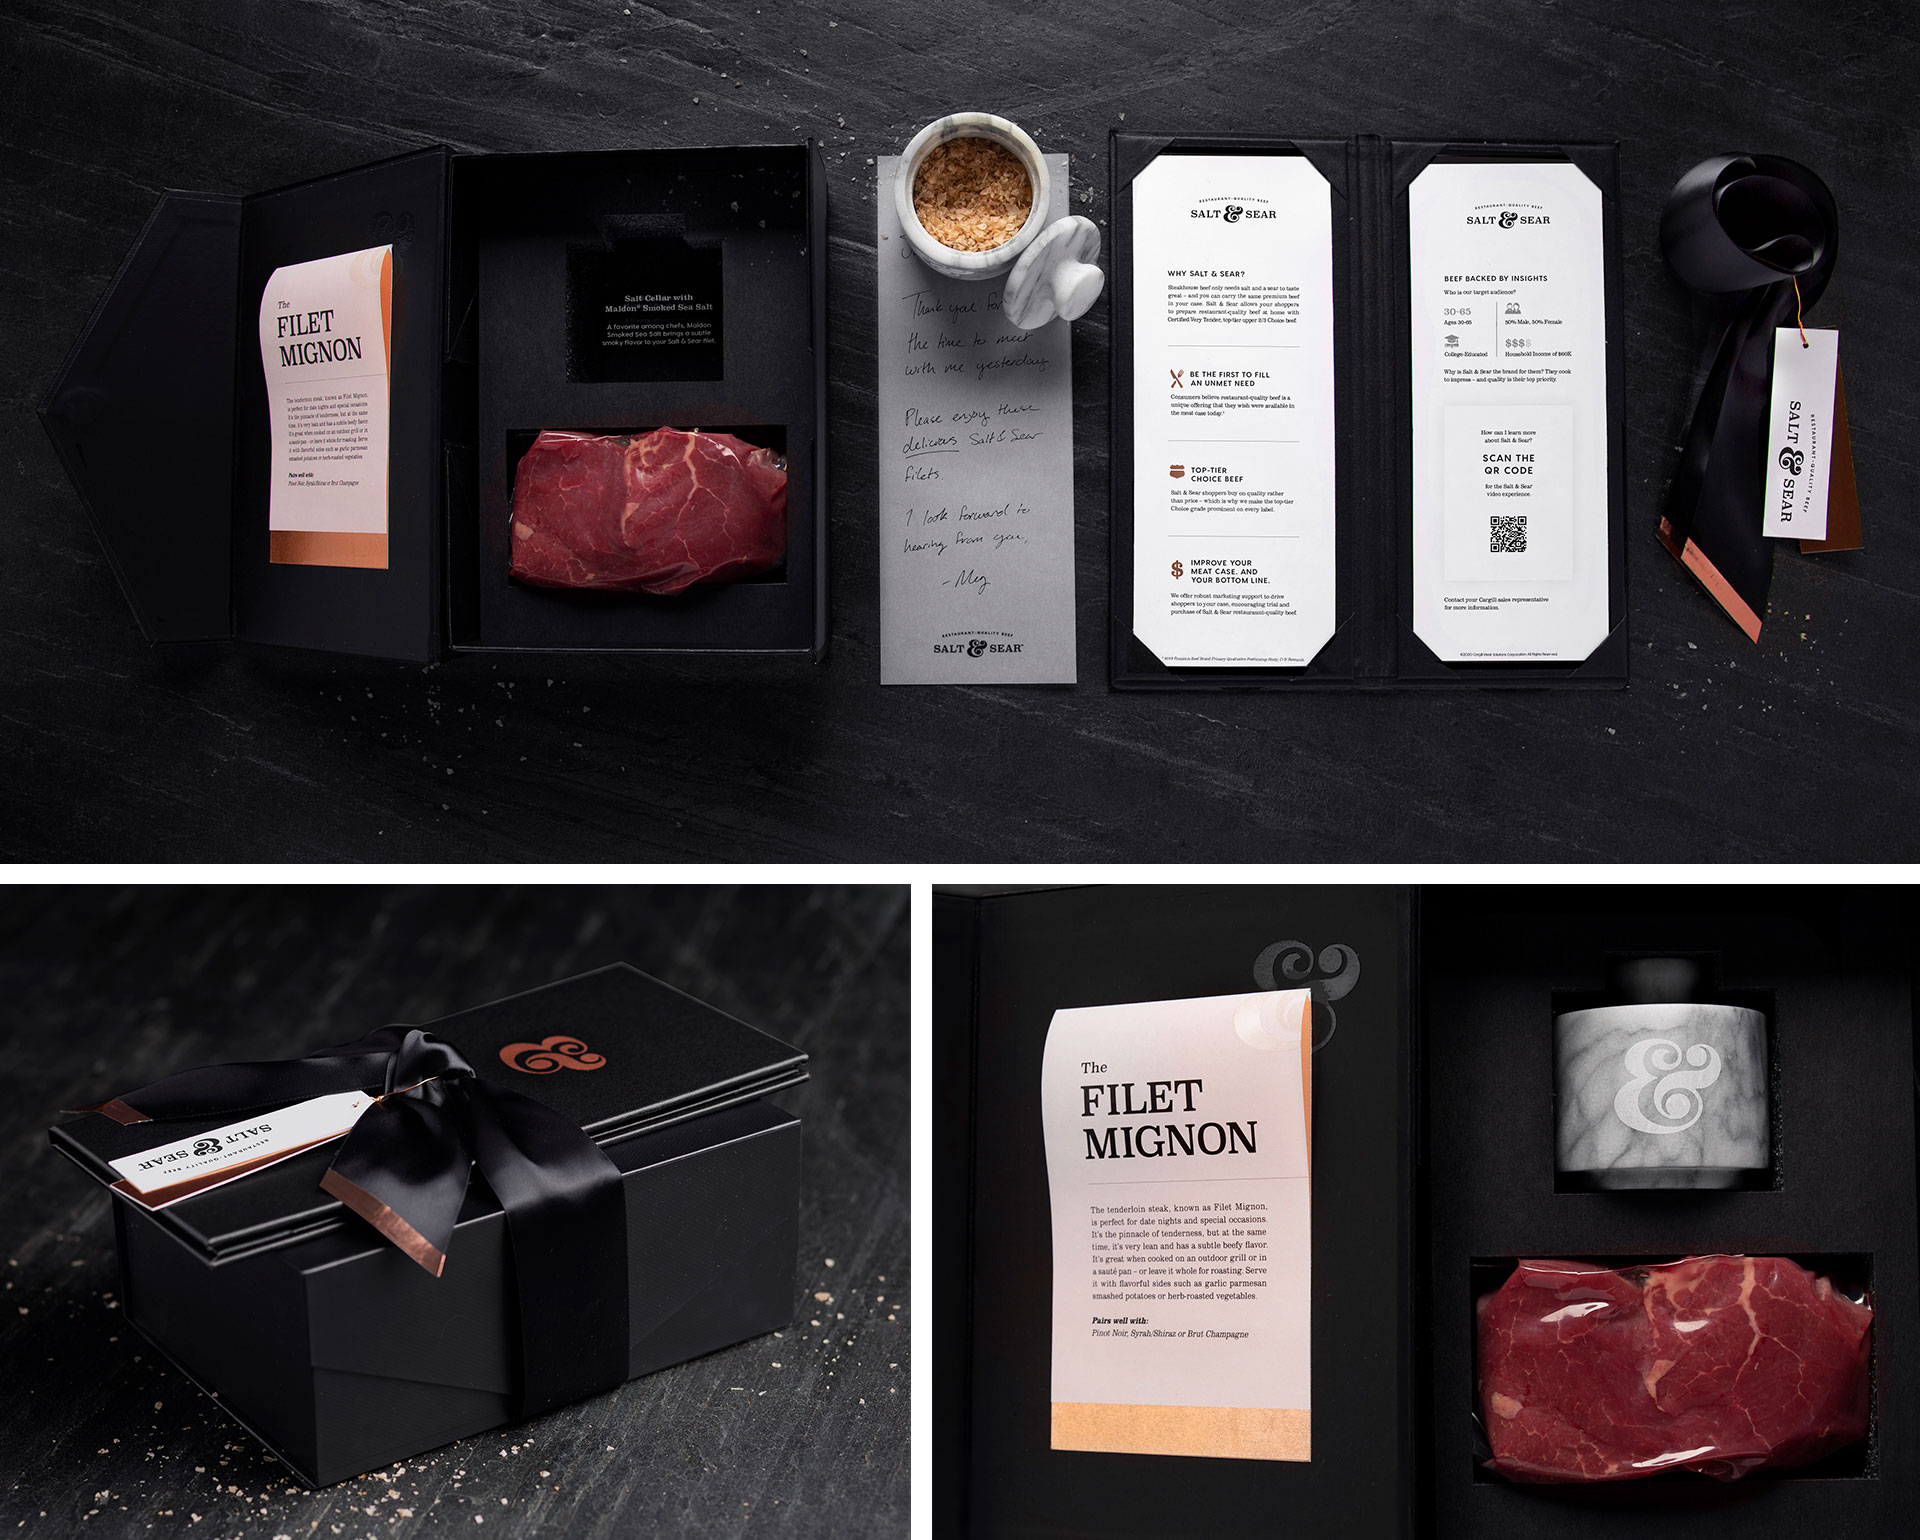 Decorative elements of the Salt & Sear branded gift box.